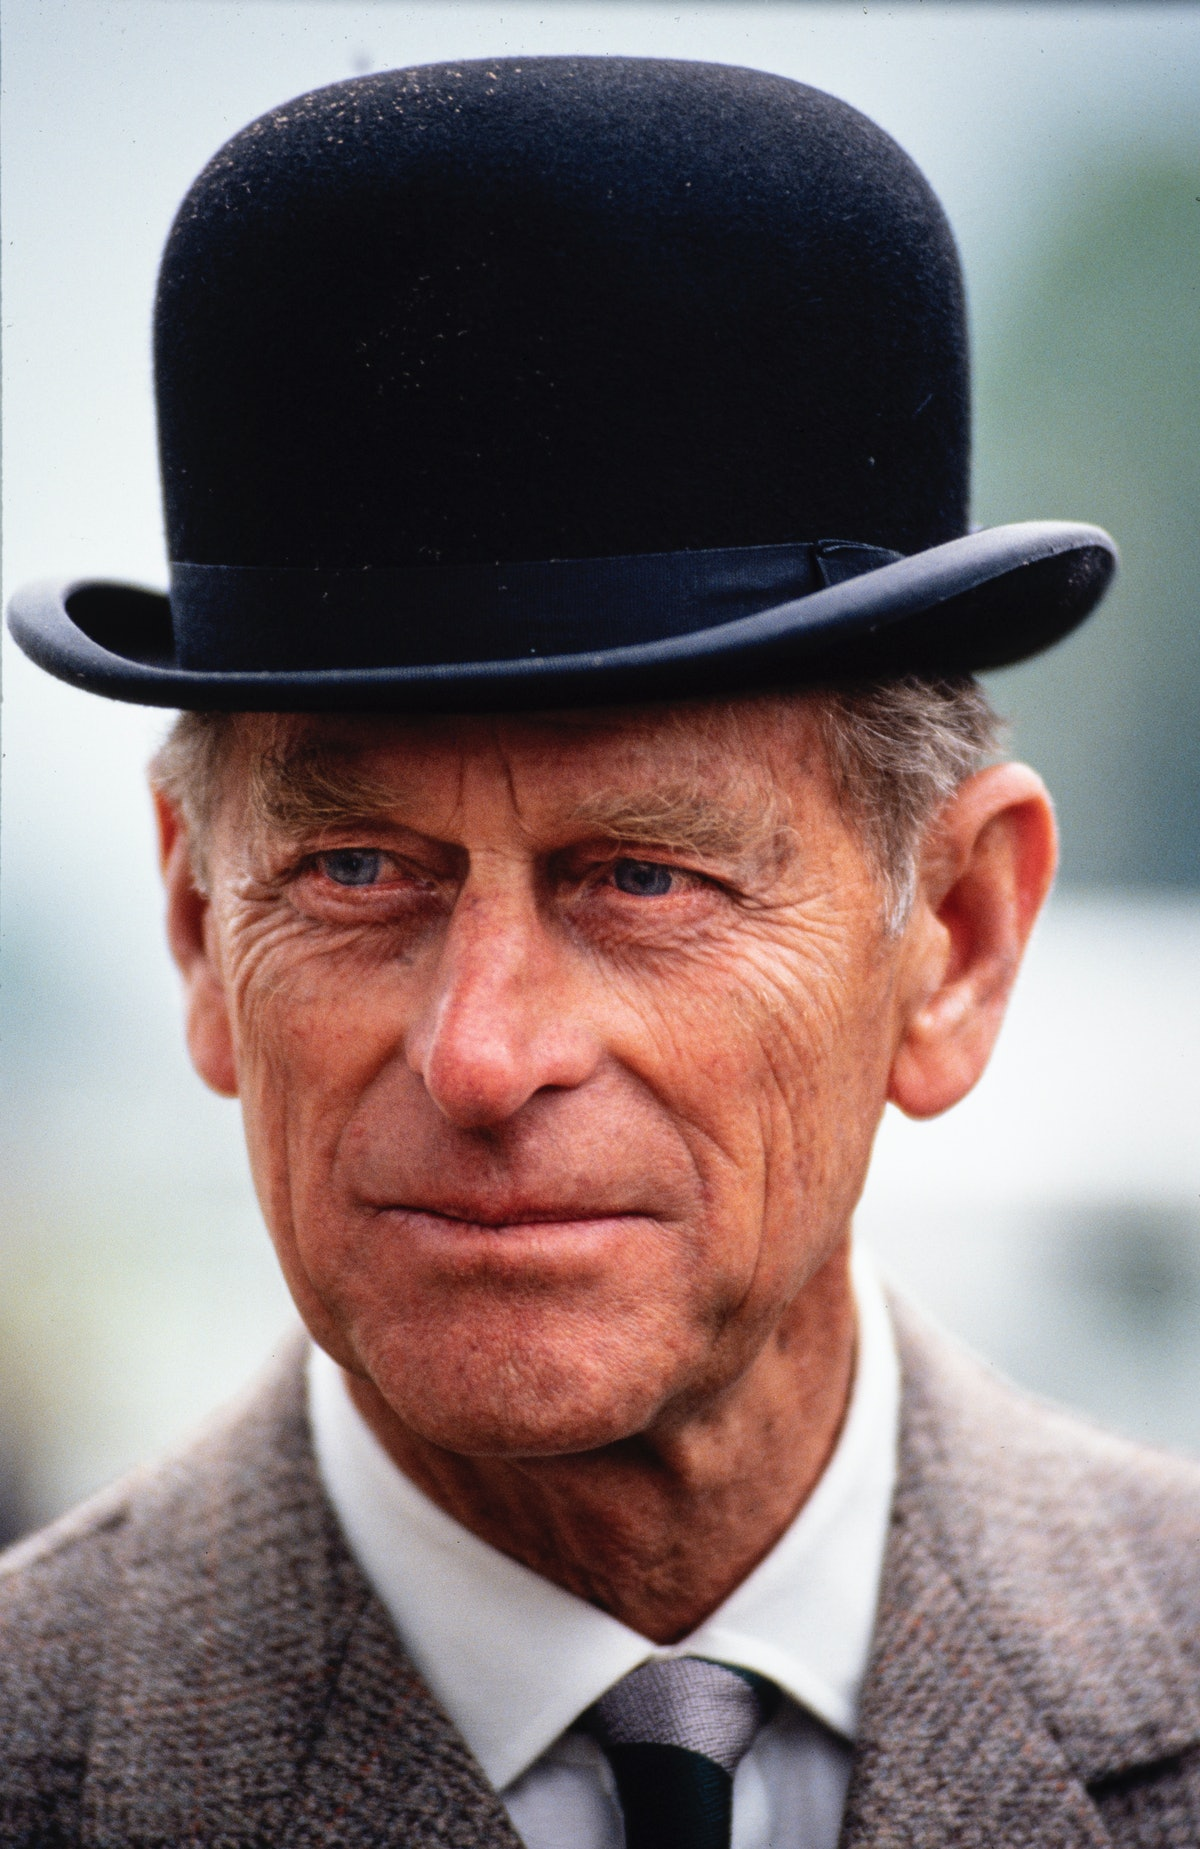 WINDSOR MAY 12: Prince Philip, Duke of Edinburgh, drives a carriage at the Royal Windsor Horse Show,...